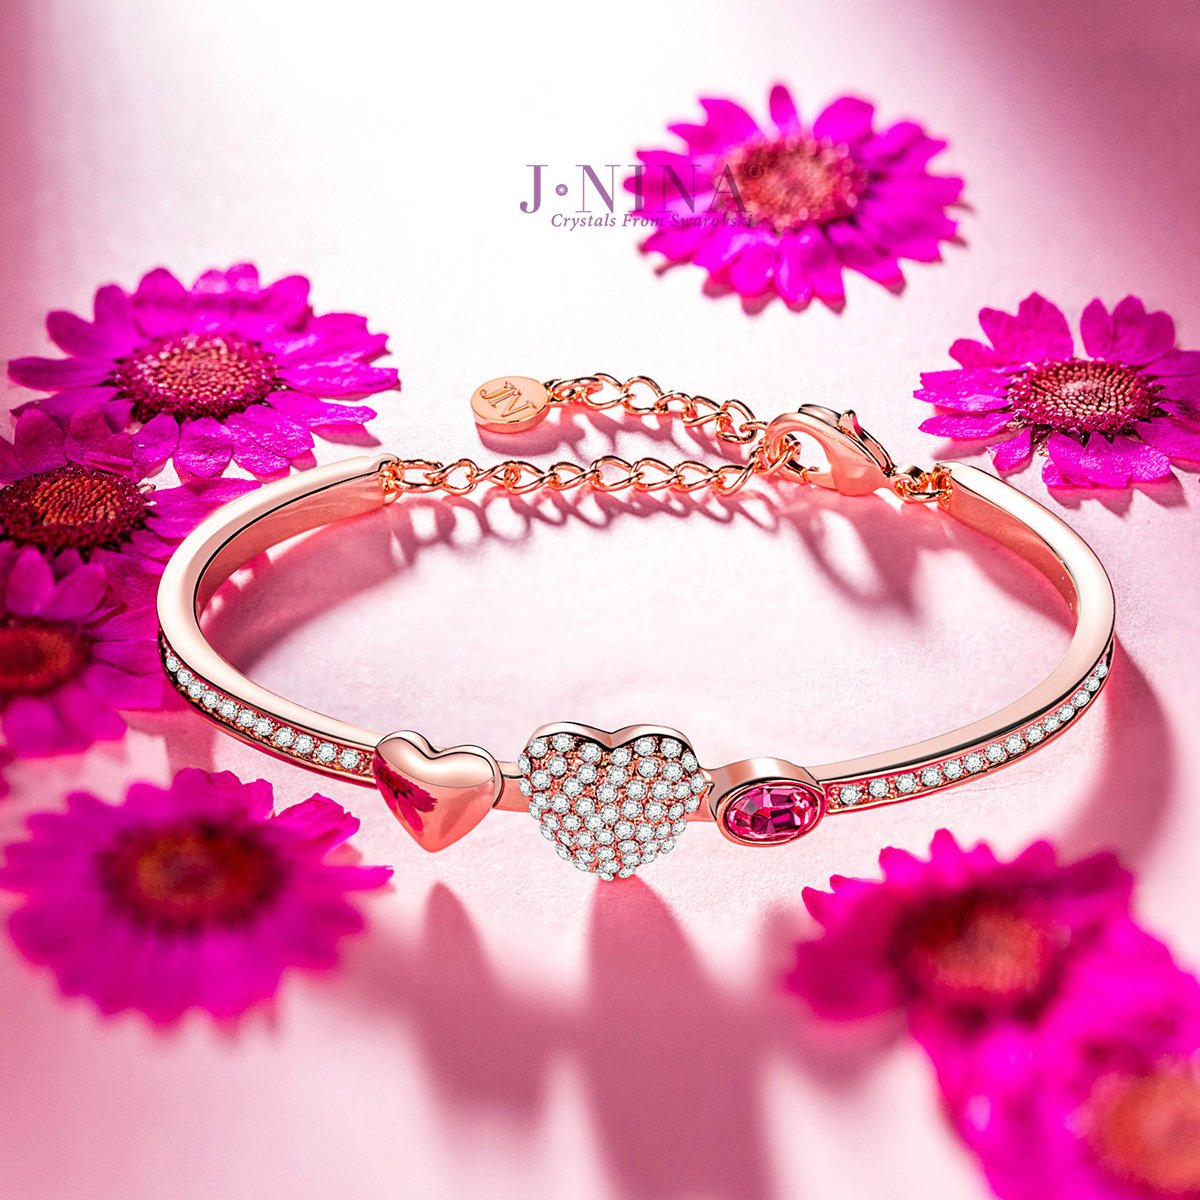 Amazon.com: J.NINA Sweet Lady Heart Bangle with Crystals from Swarovski,  Rose-Gold Plated Bracelet for Women On Anniversary Birthday Christmas:  Jewelry